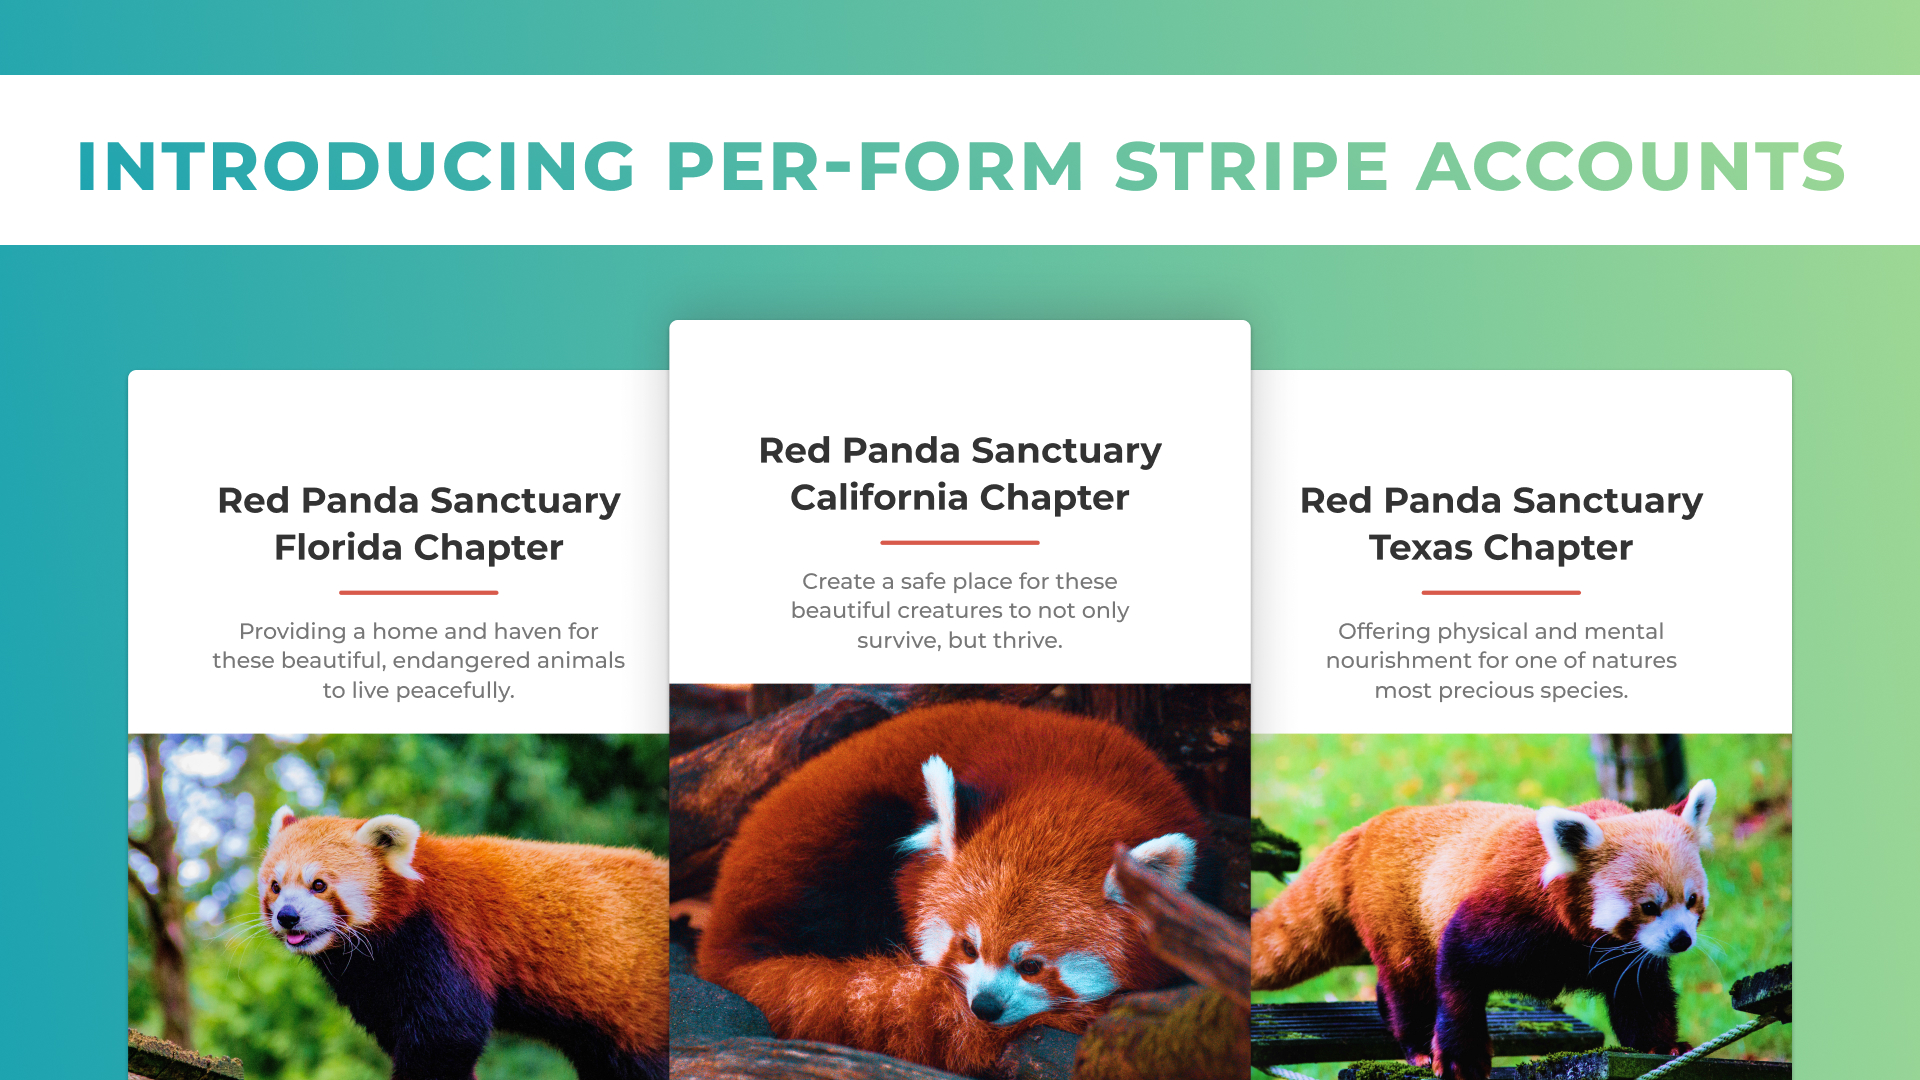 Per-form Stripe Account Poster